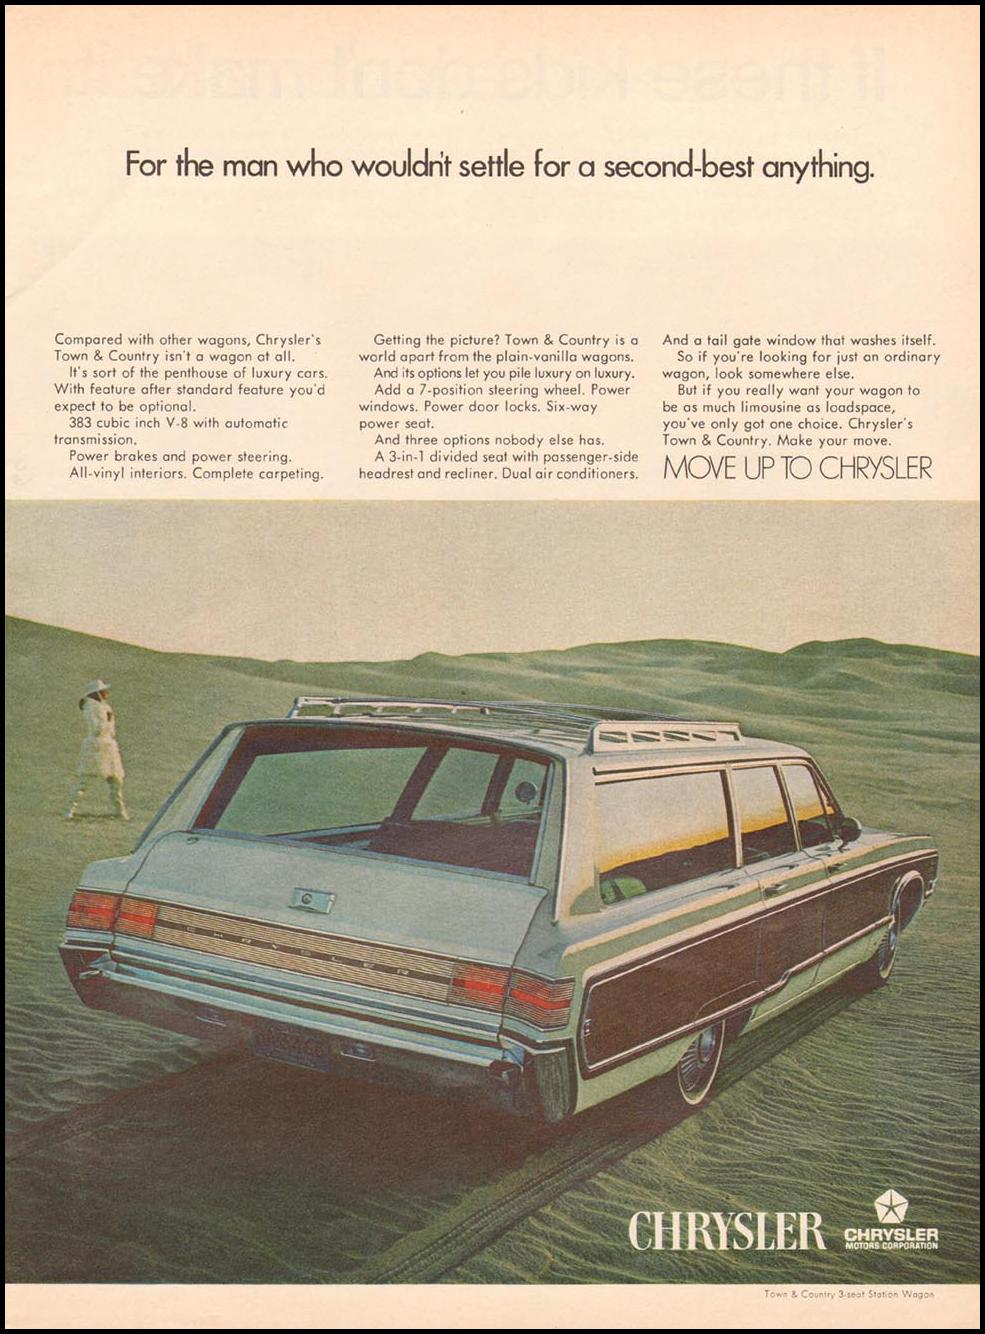 CHRYSLER AUTOMOBILES NEWSWEEK 05/20/1968 p. 57